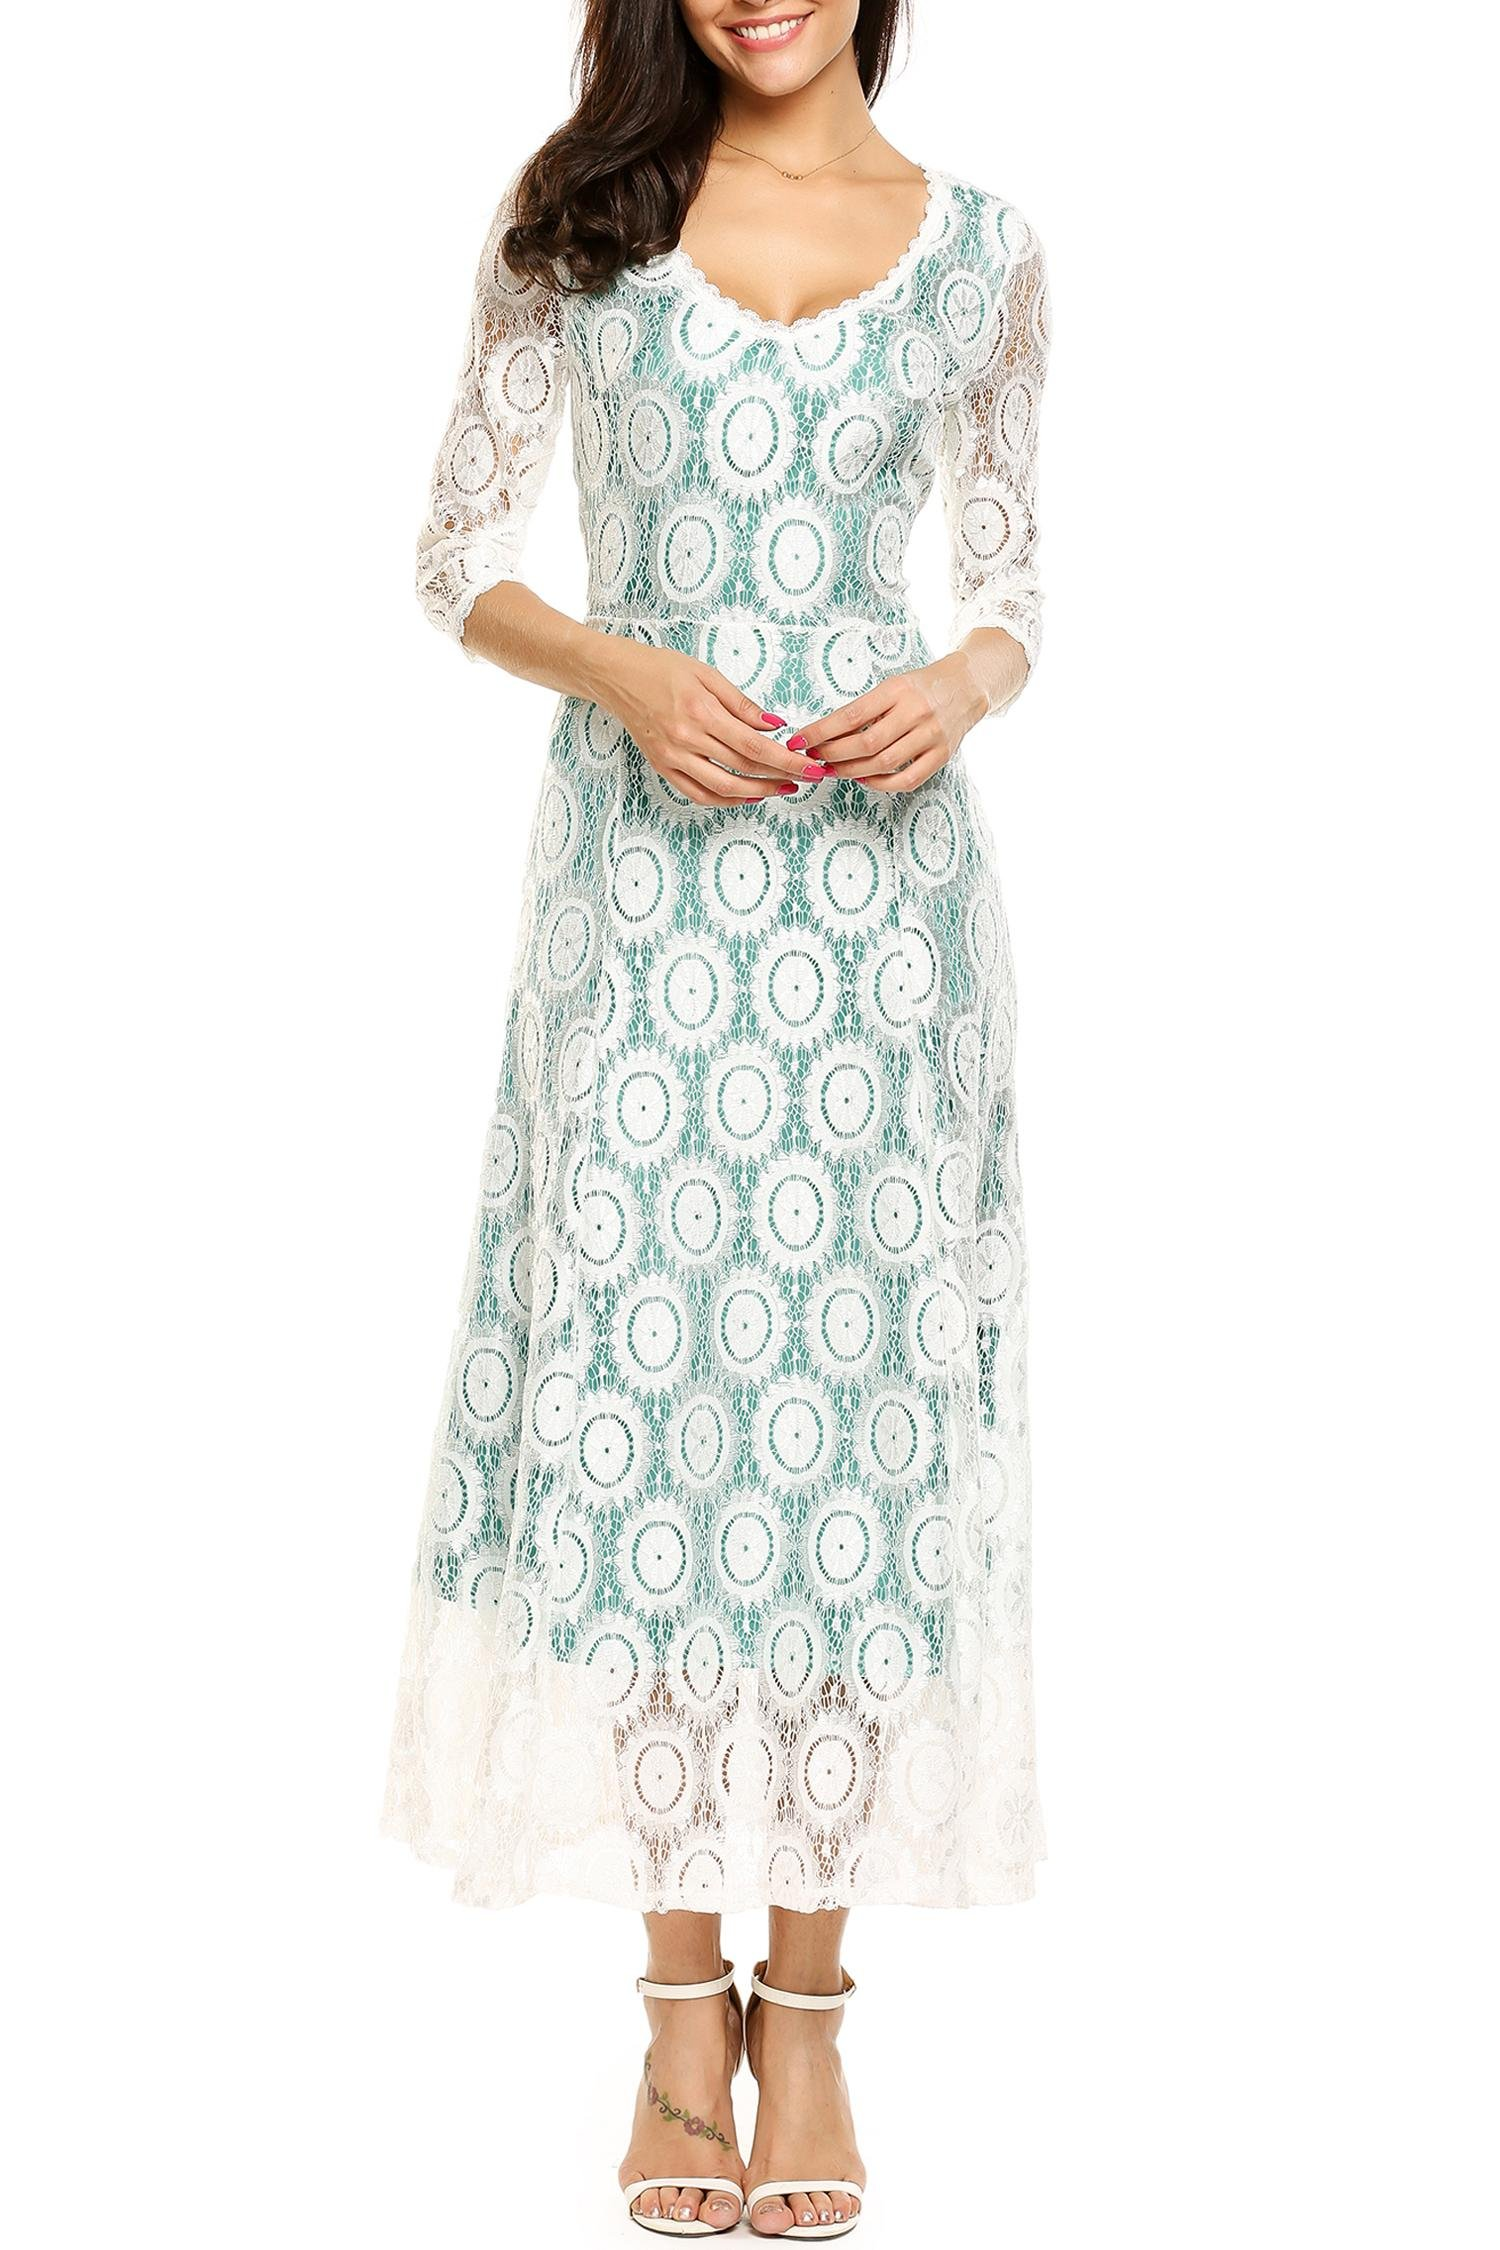 cde6425f0a8 ANGVNS Women s Floral Lace Shimmering Lining A Line Prom Maxi Long Dress